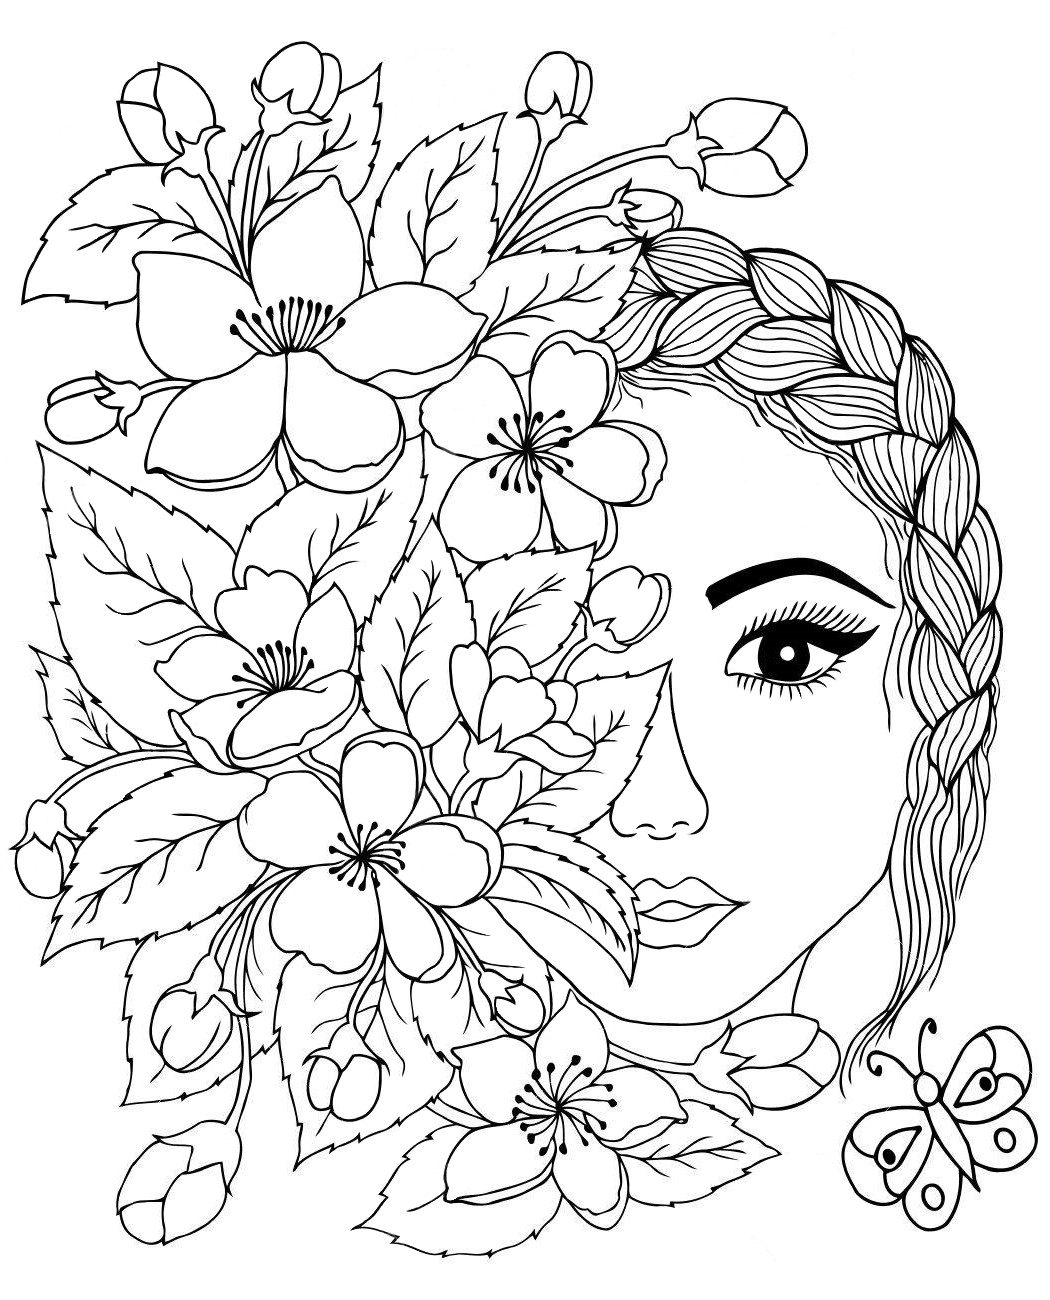 Art therapy the face with flowers - Coloring pages for you